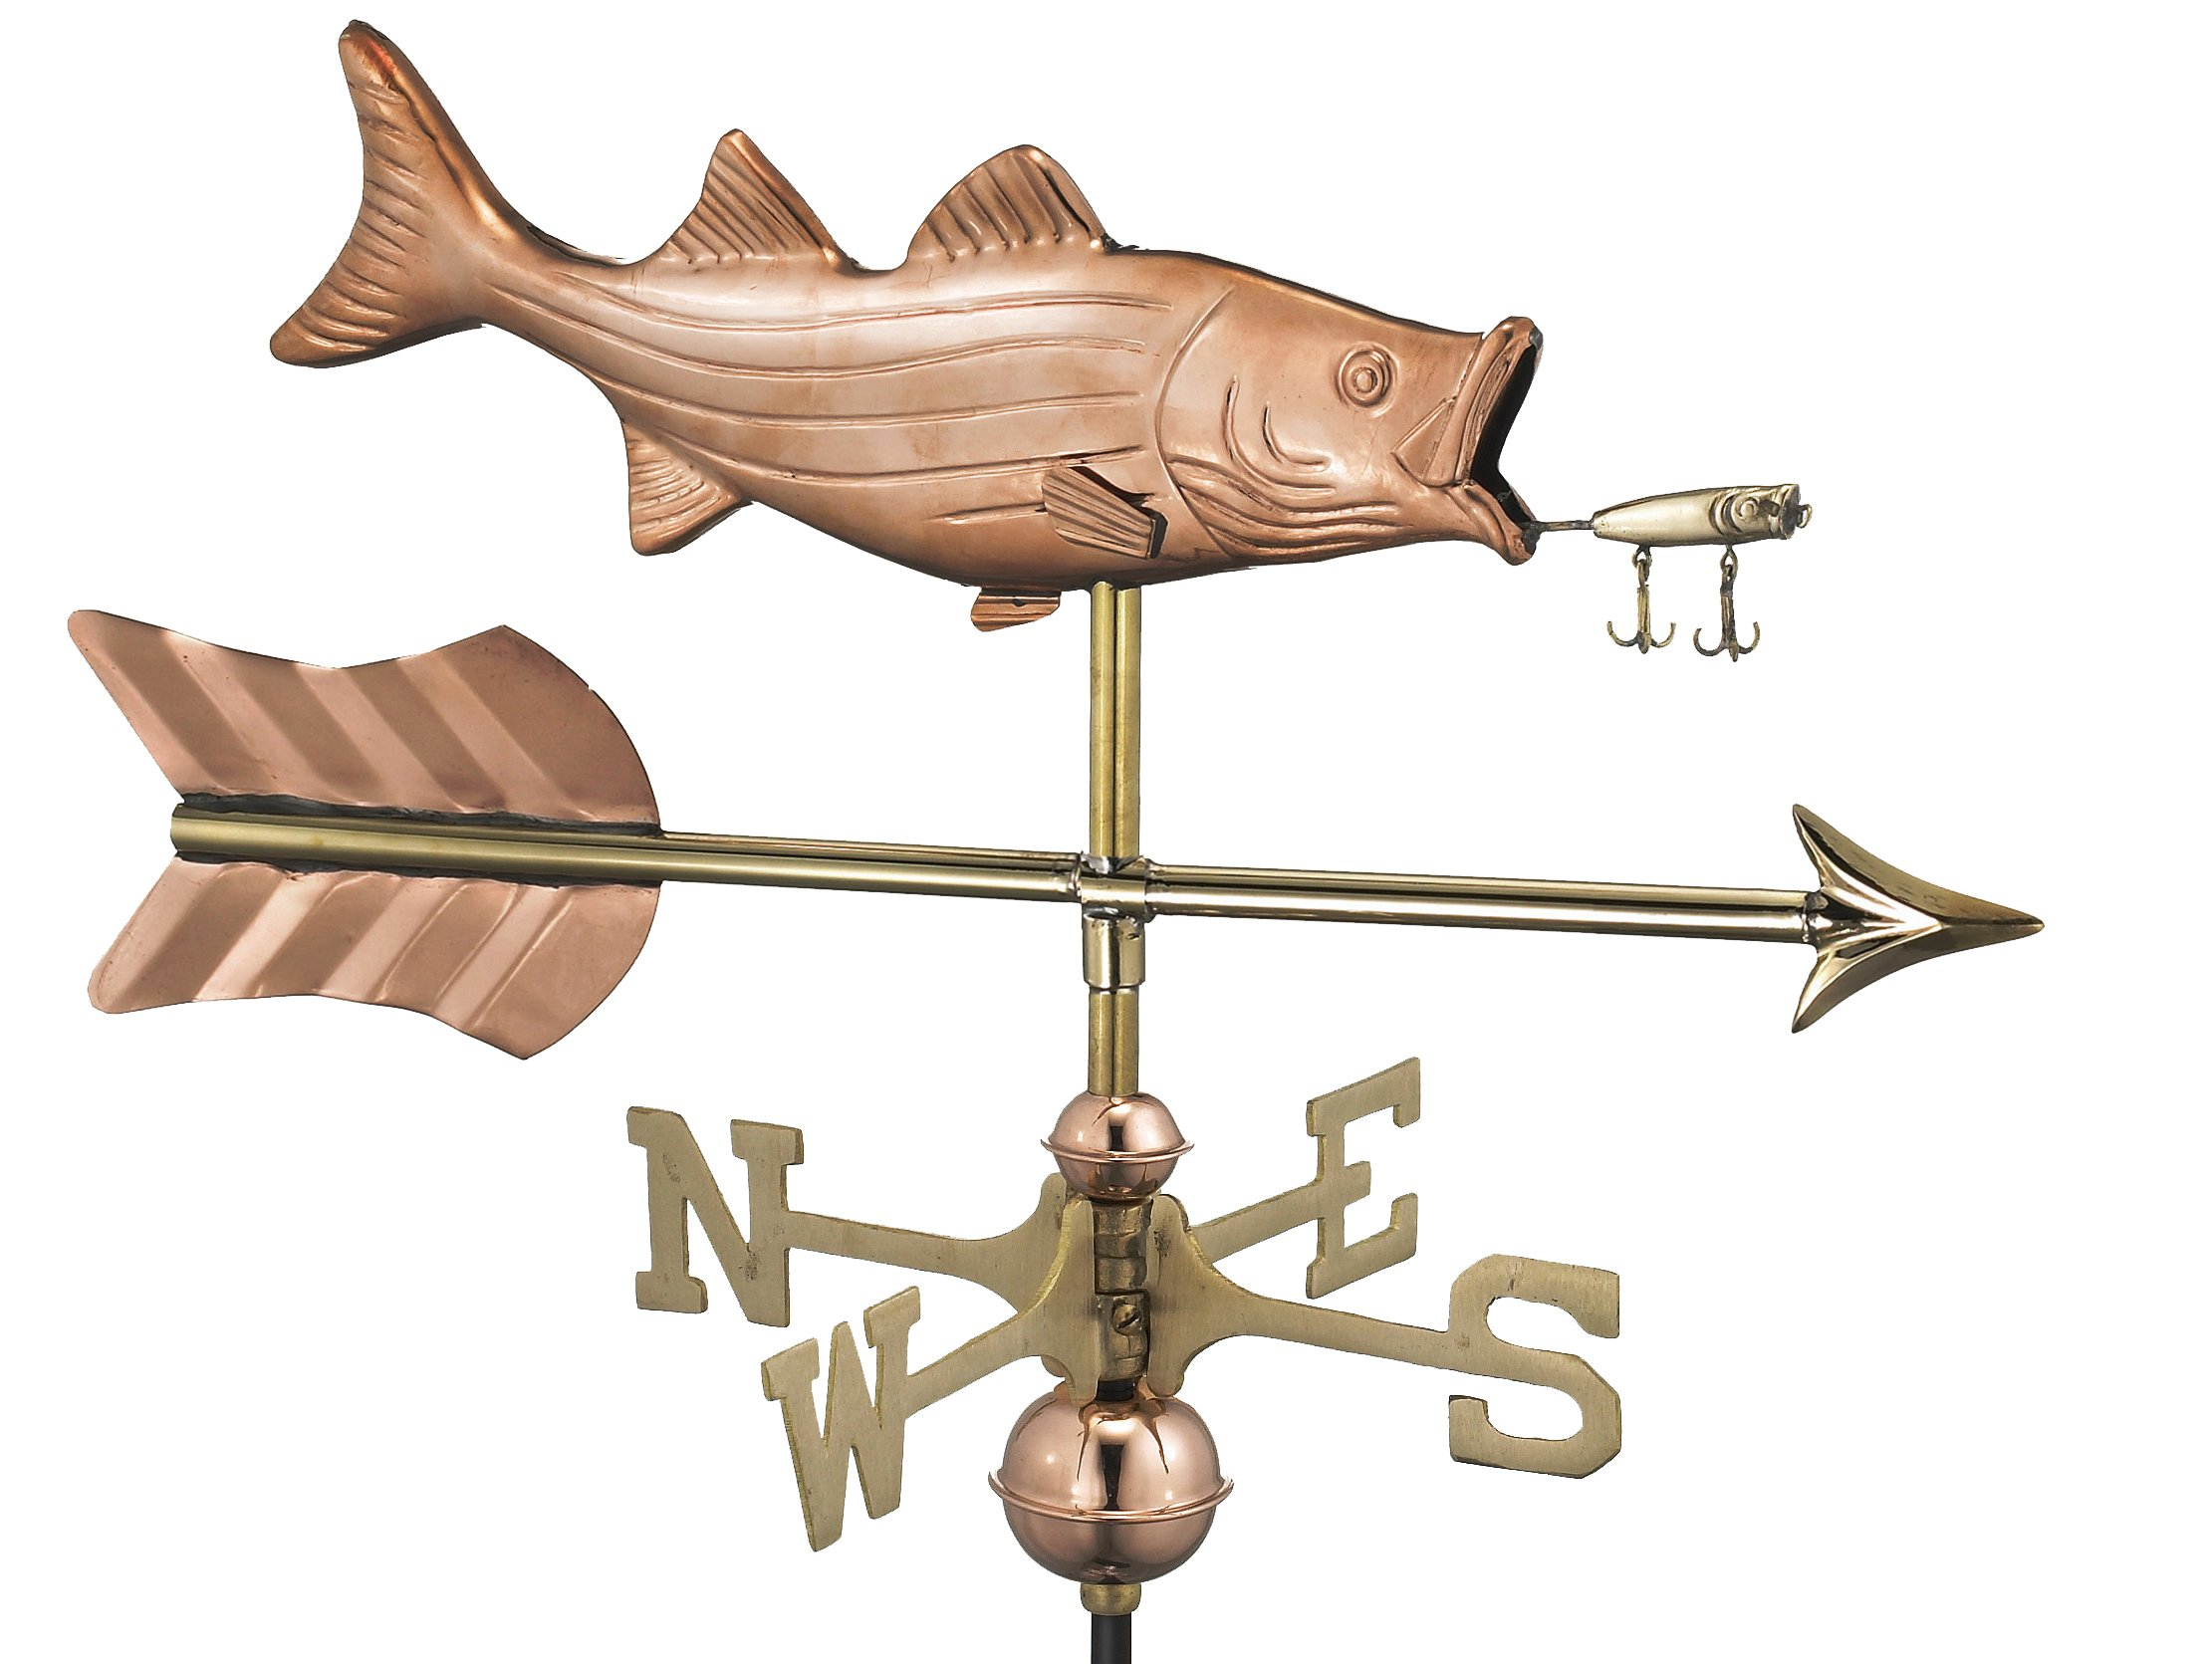 Good Directions Bass with Lure and Arrow Weathervane, Includes Roof Mount, Pure Copper, Fish